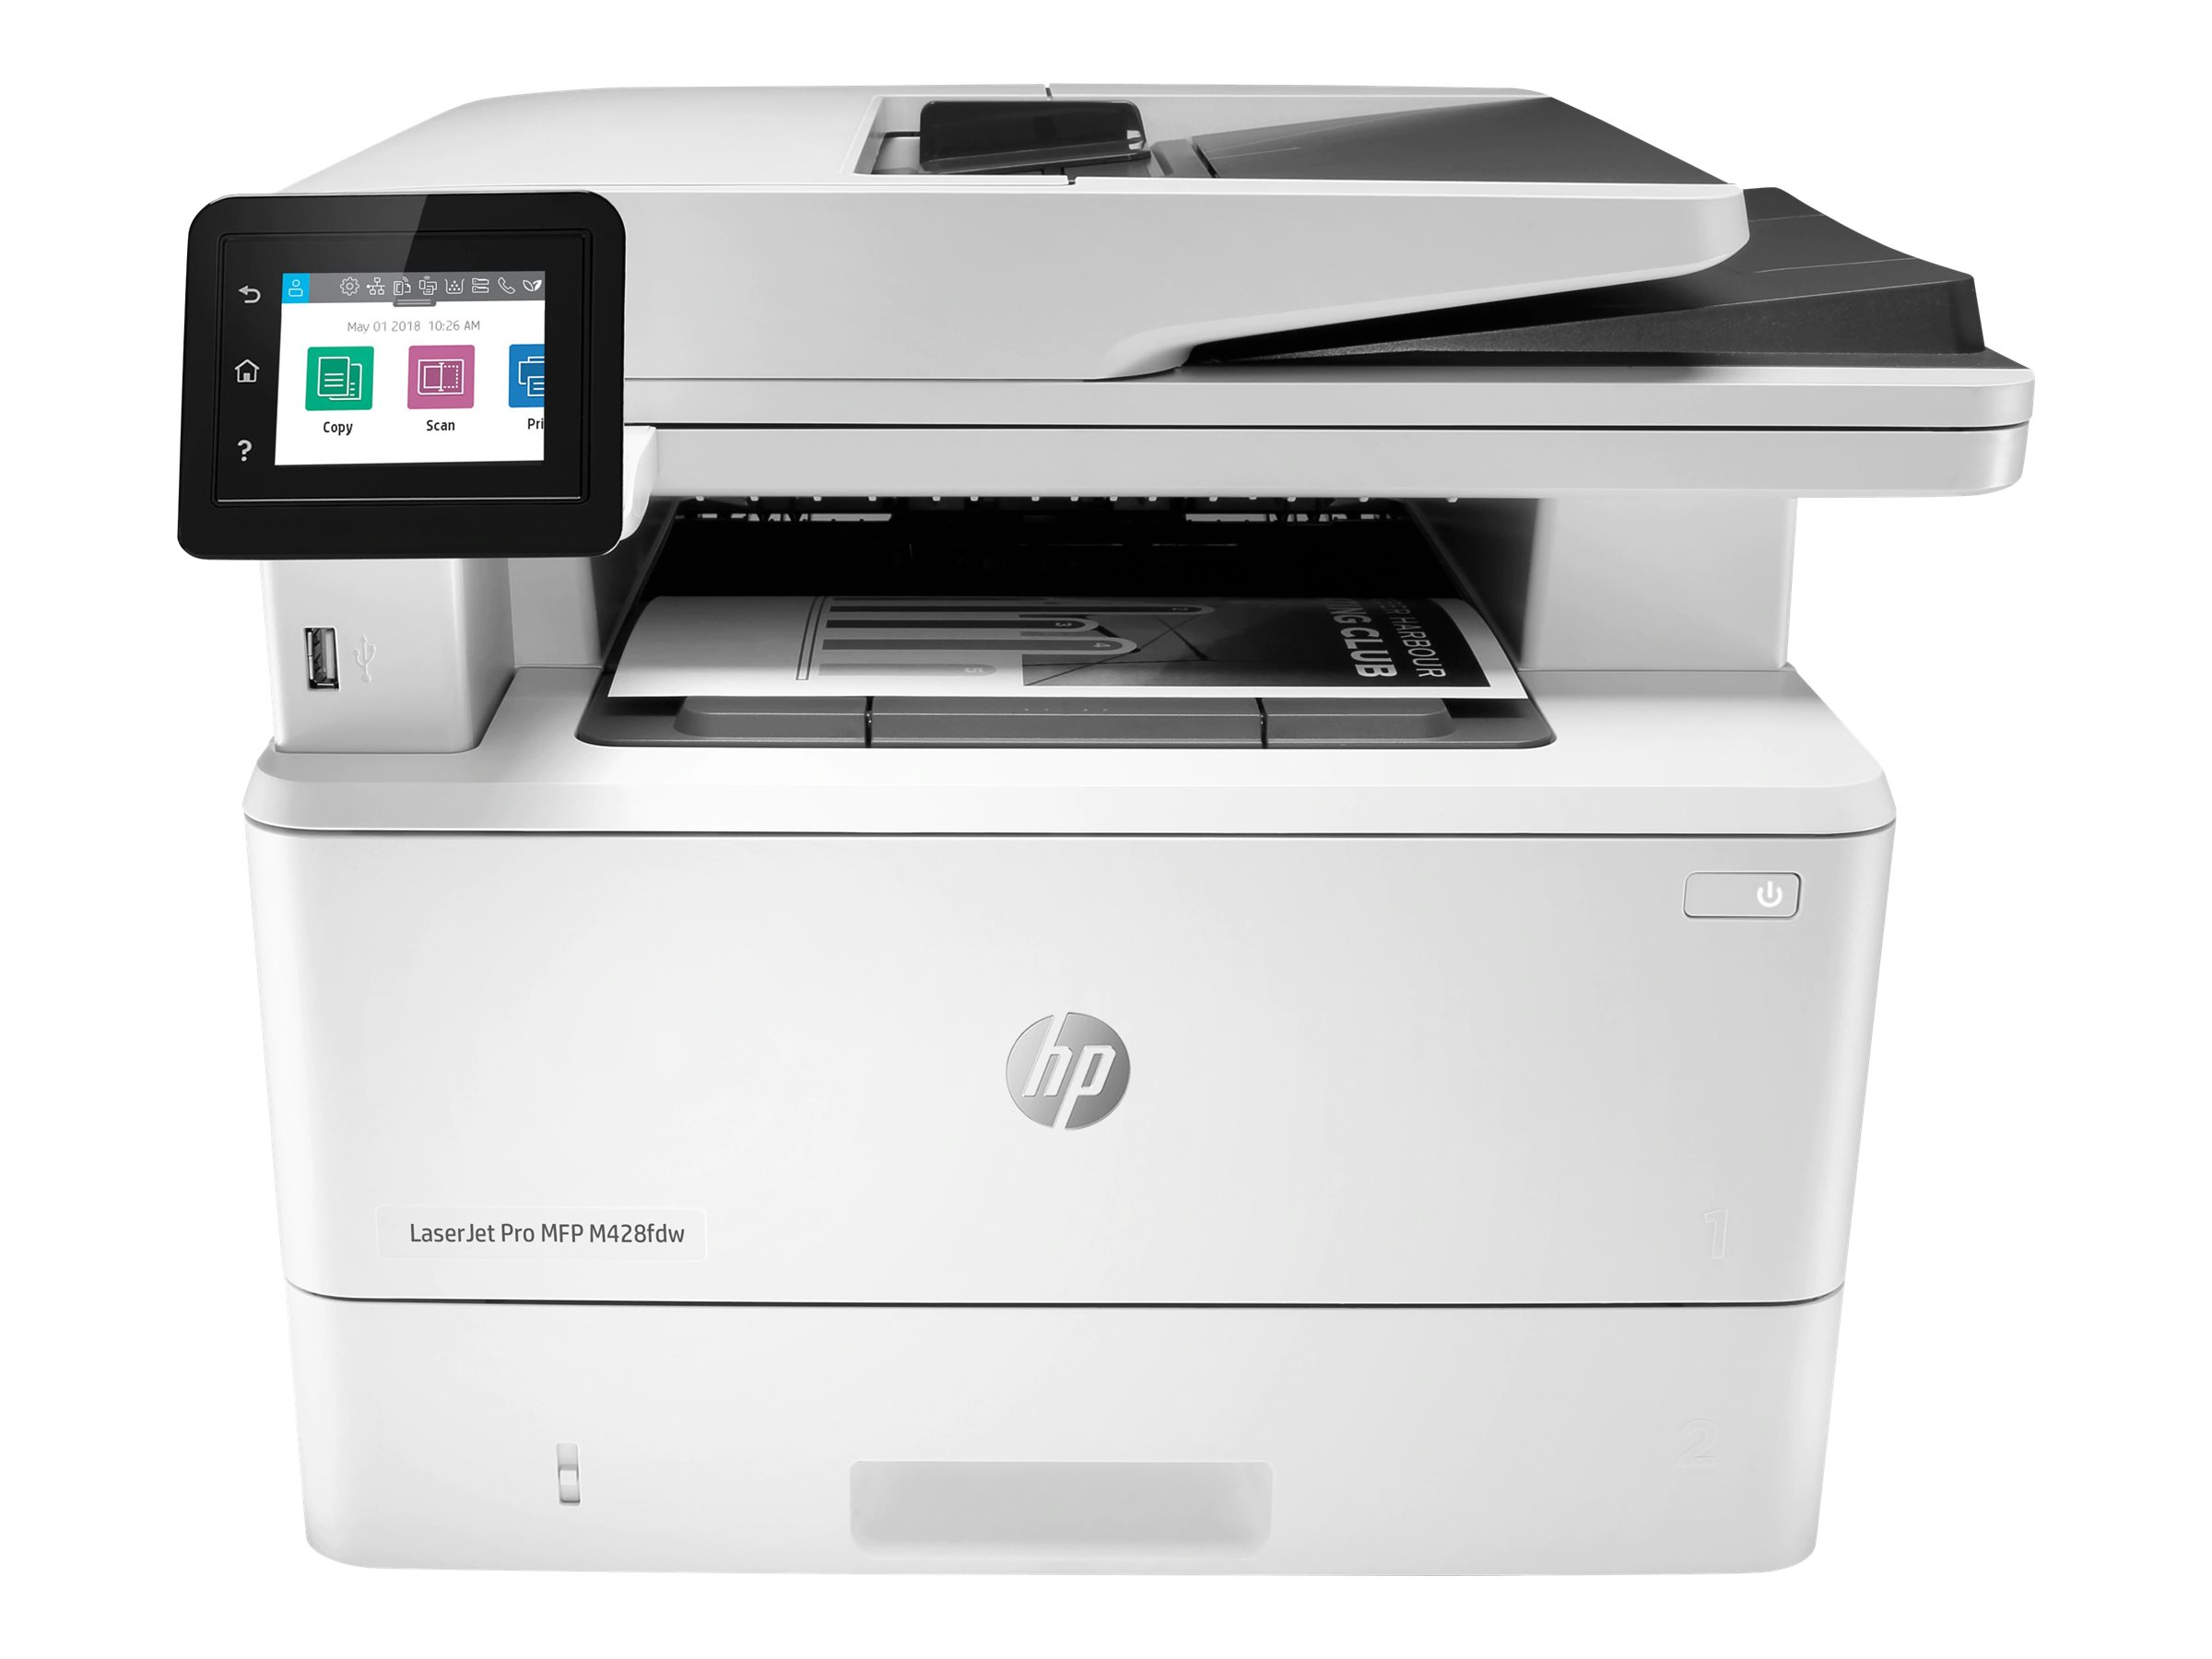 Image de HP LaserJet Pro MFP M428fdw - Imprimante multifonctions - Noir et blanc - laser - Legal (216 x 356 mm) (original) - A4/Legal (support) - jusqu'à 38 ppm (copie) - jusqu'à 38 ppm (impression) - 350 feuilles - 33.6 Kbits/s - USB 2.0, Gigabit LAN, Wi-Fi(n), hôte USB